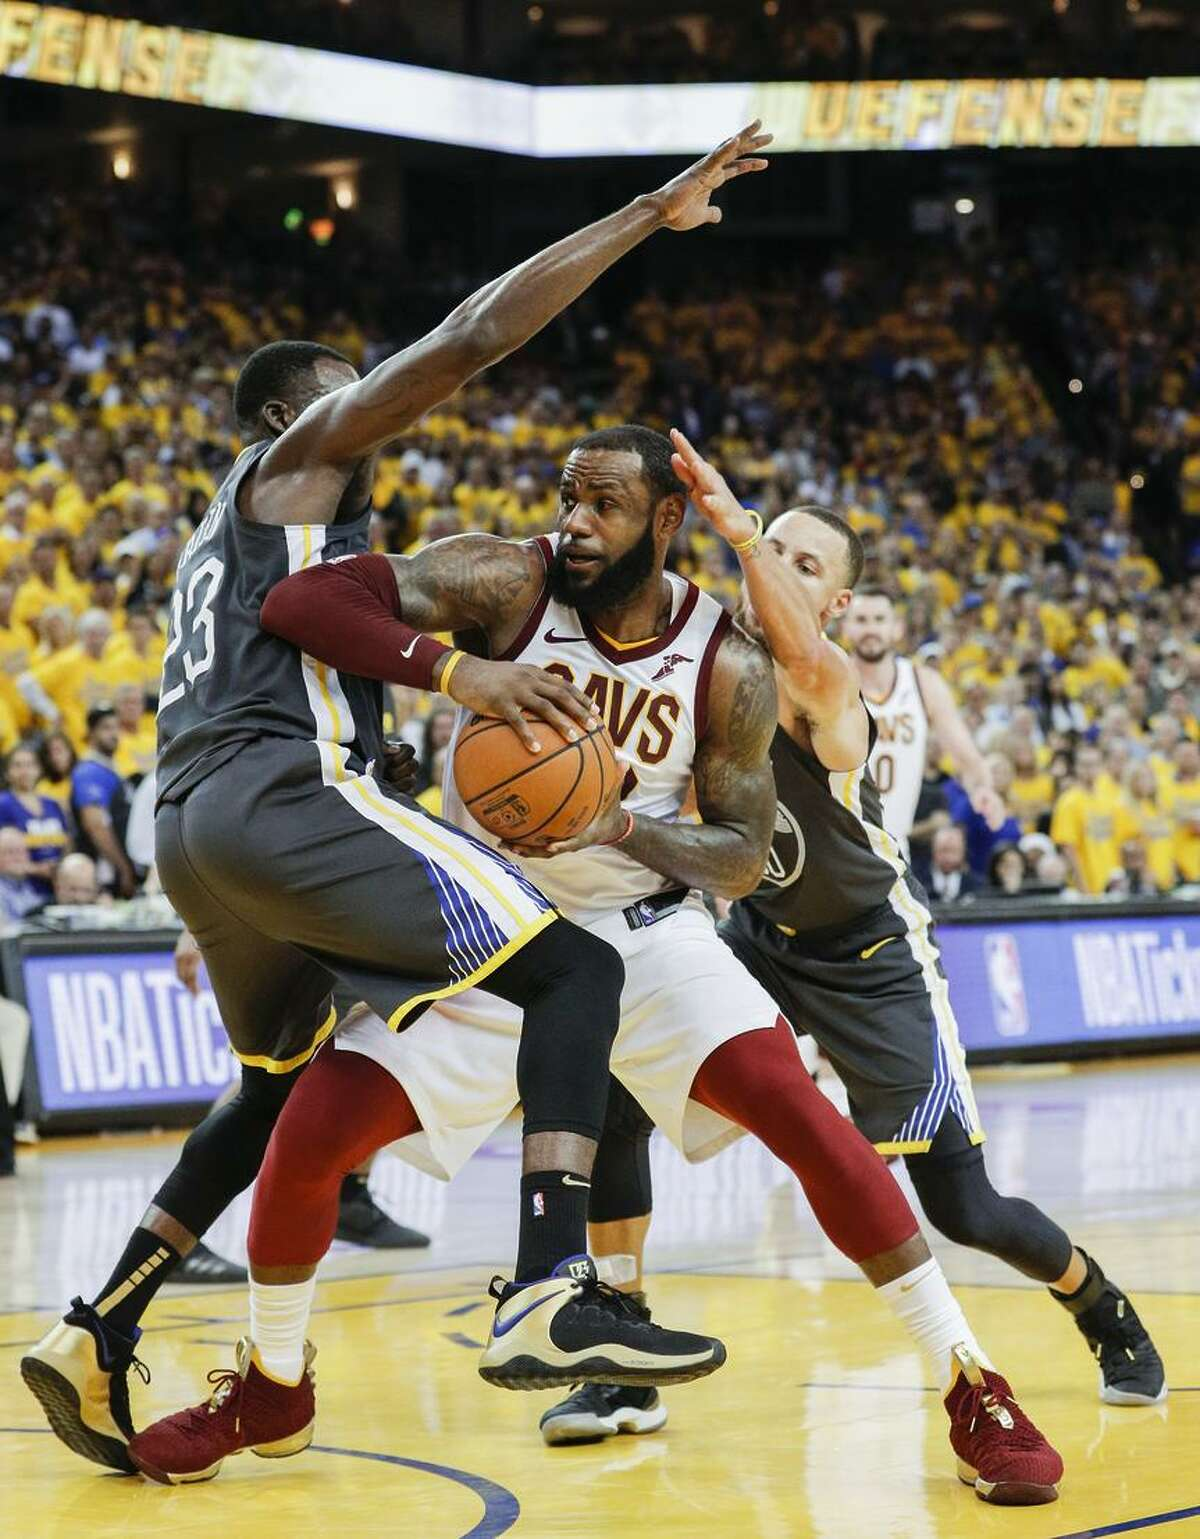 LeBron James gives Draymond Green the elbow treatment - probably while traveling - during Game 2 of the Finals.